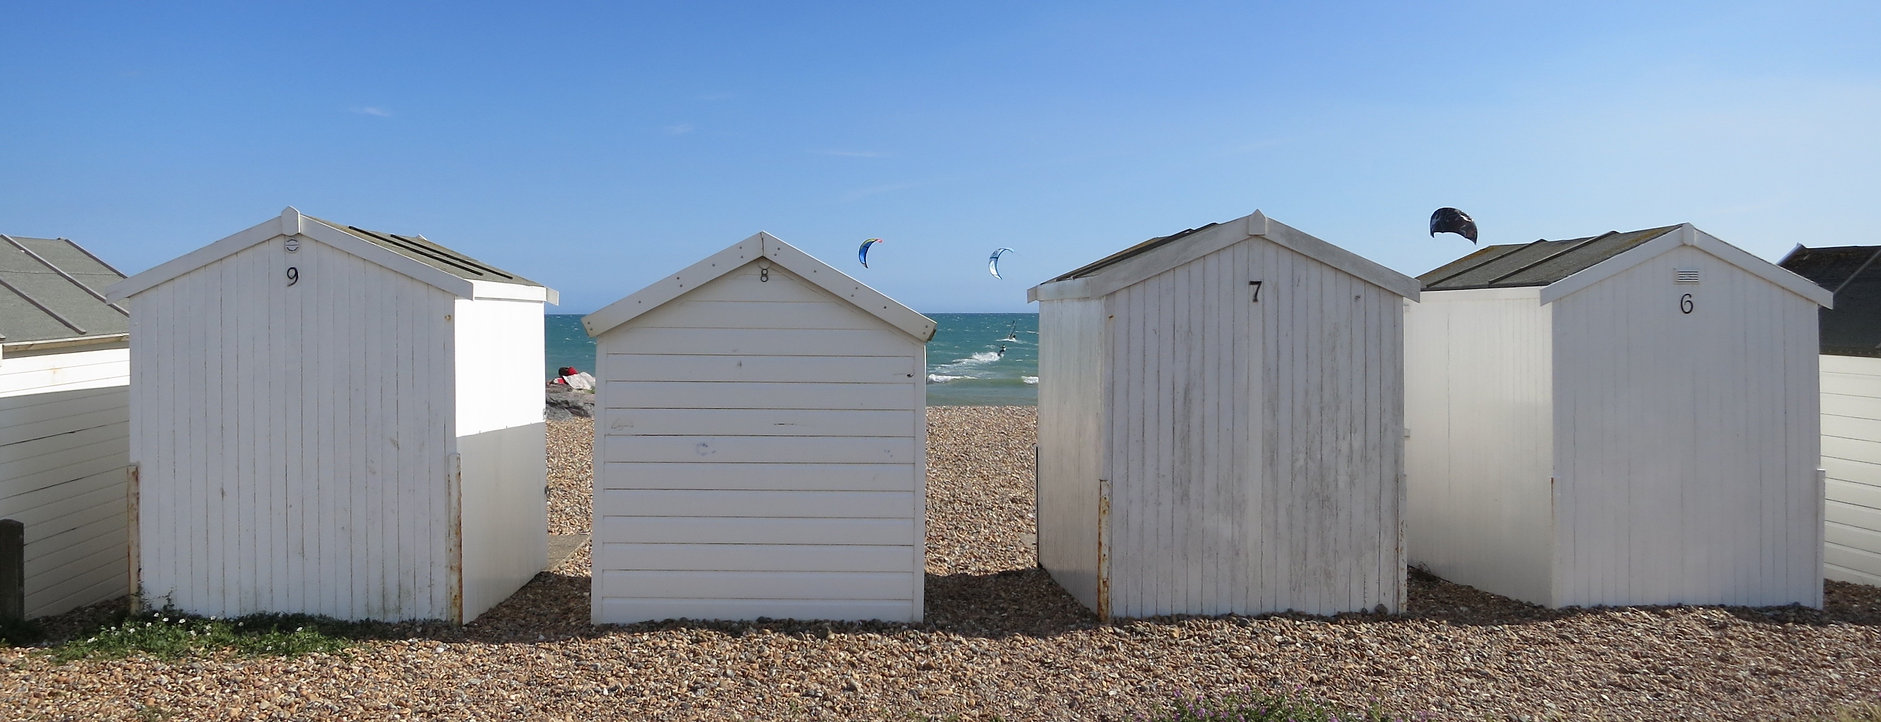 Lancing Kitesurf School Contact Kite Lessons Beach Huts at Goring